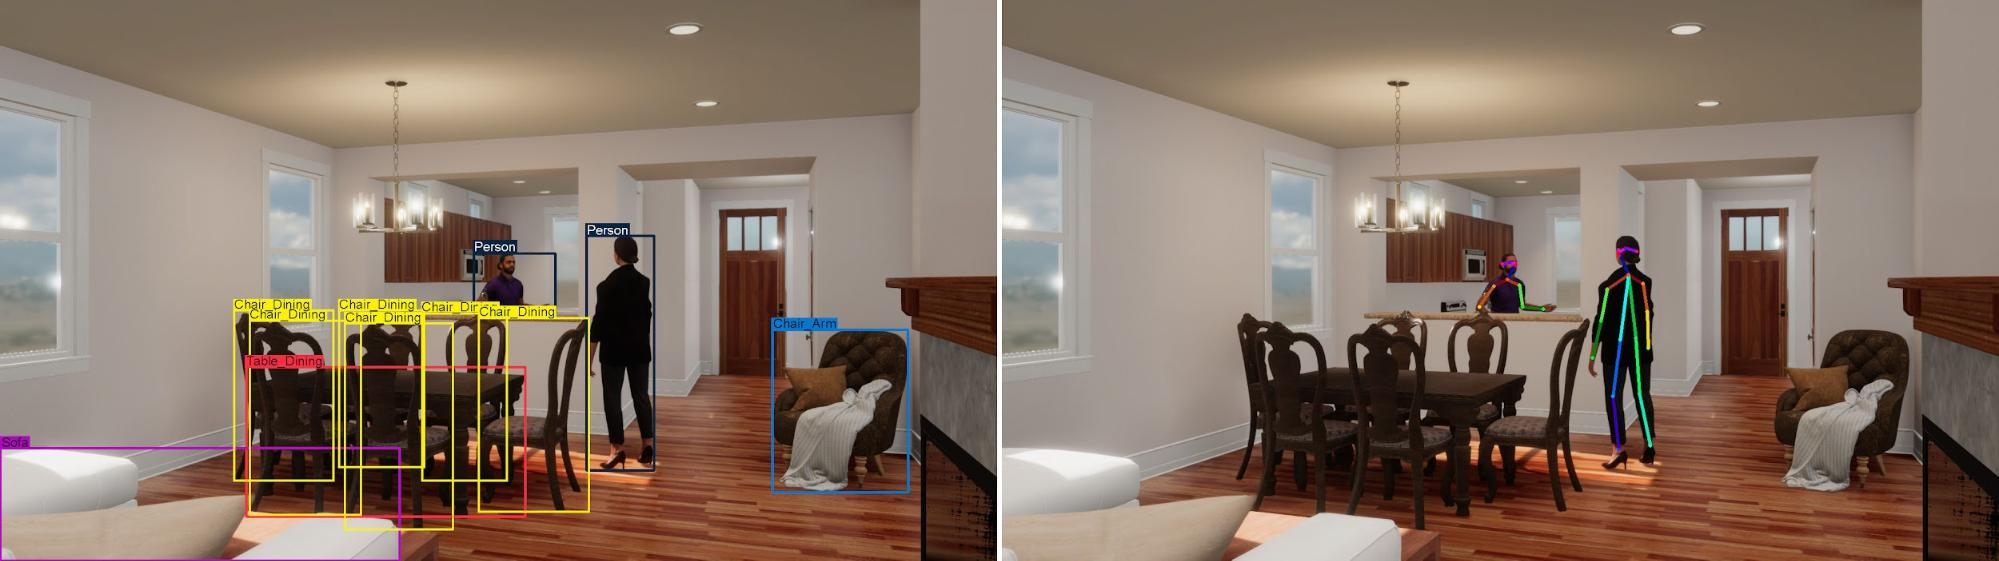 AI recognizing 2 people and objects in a room